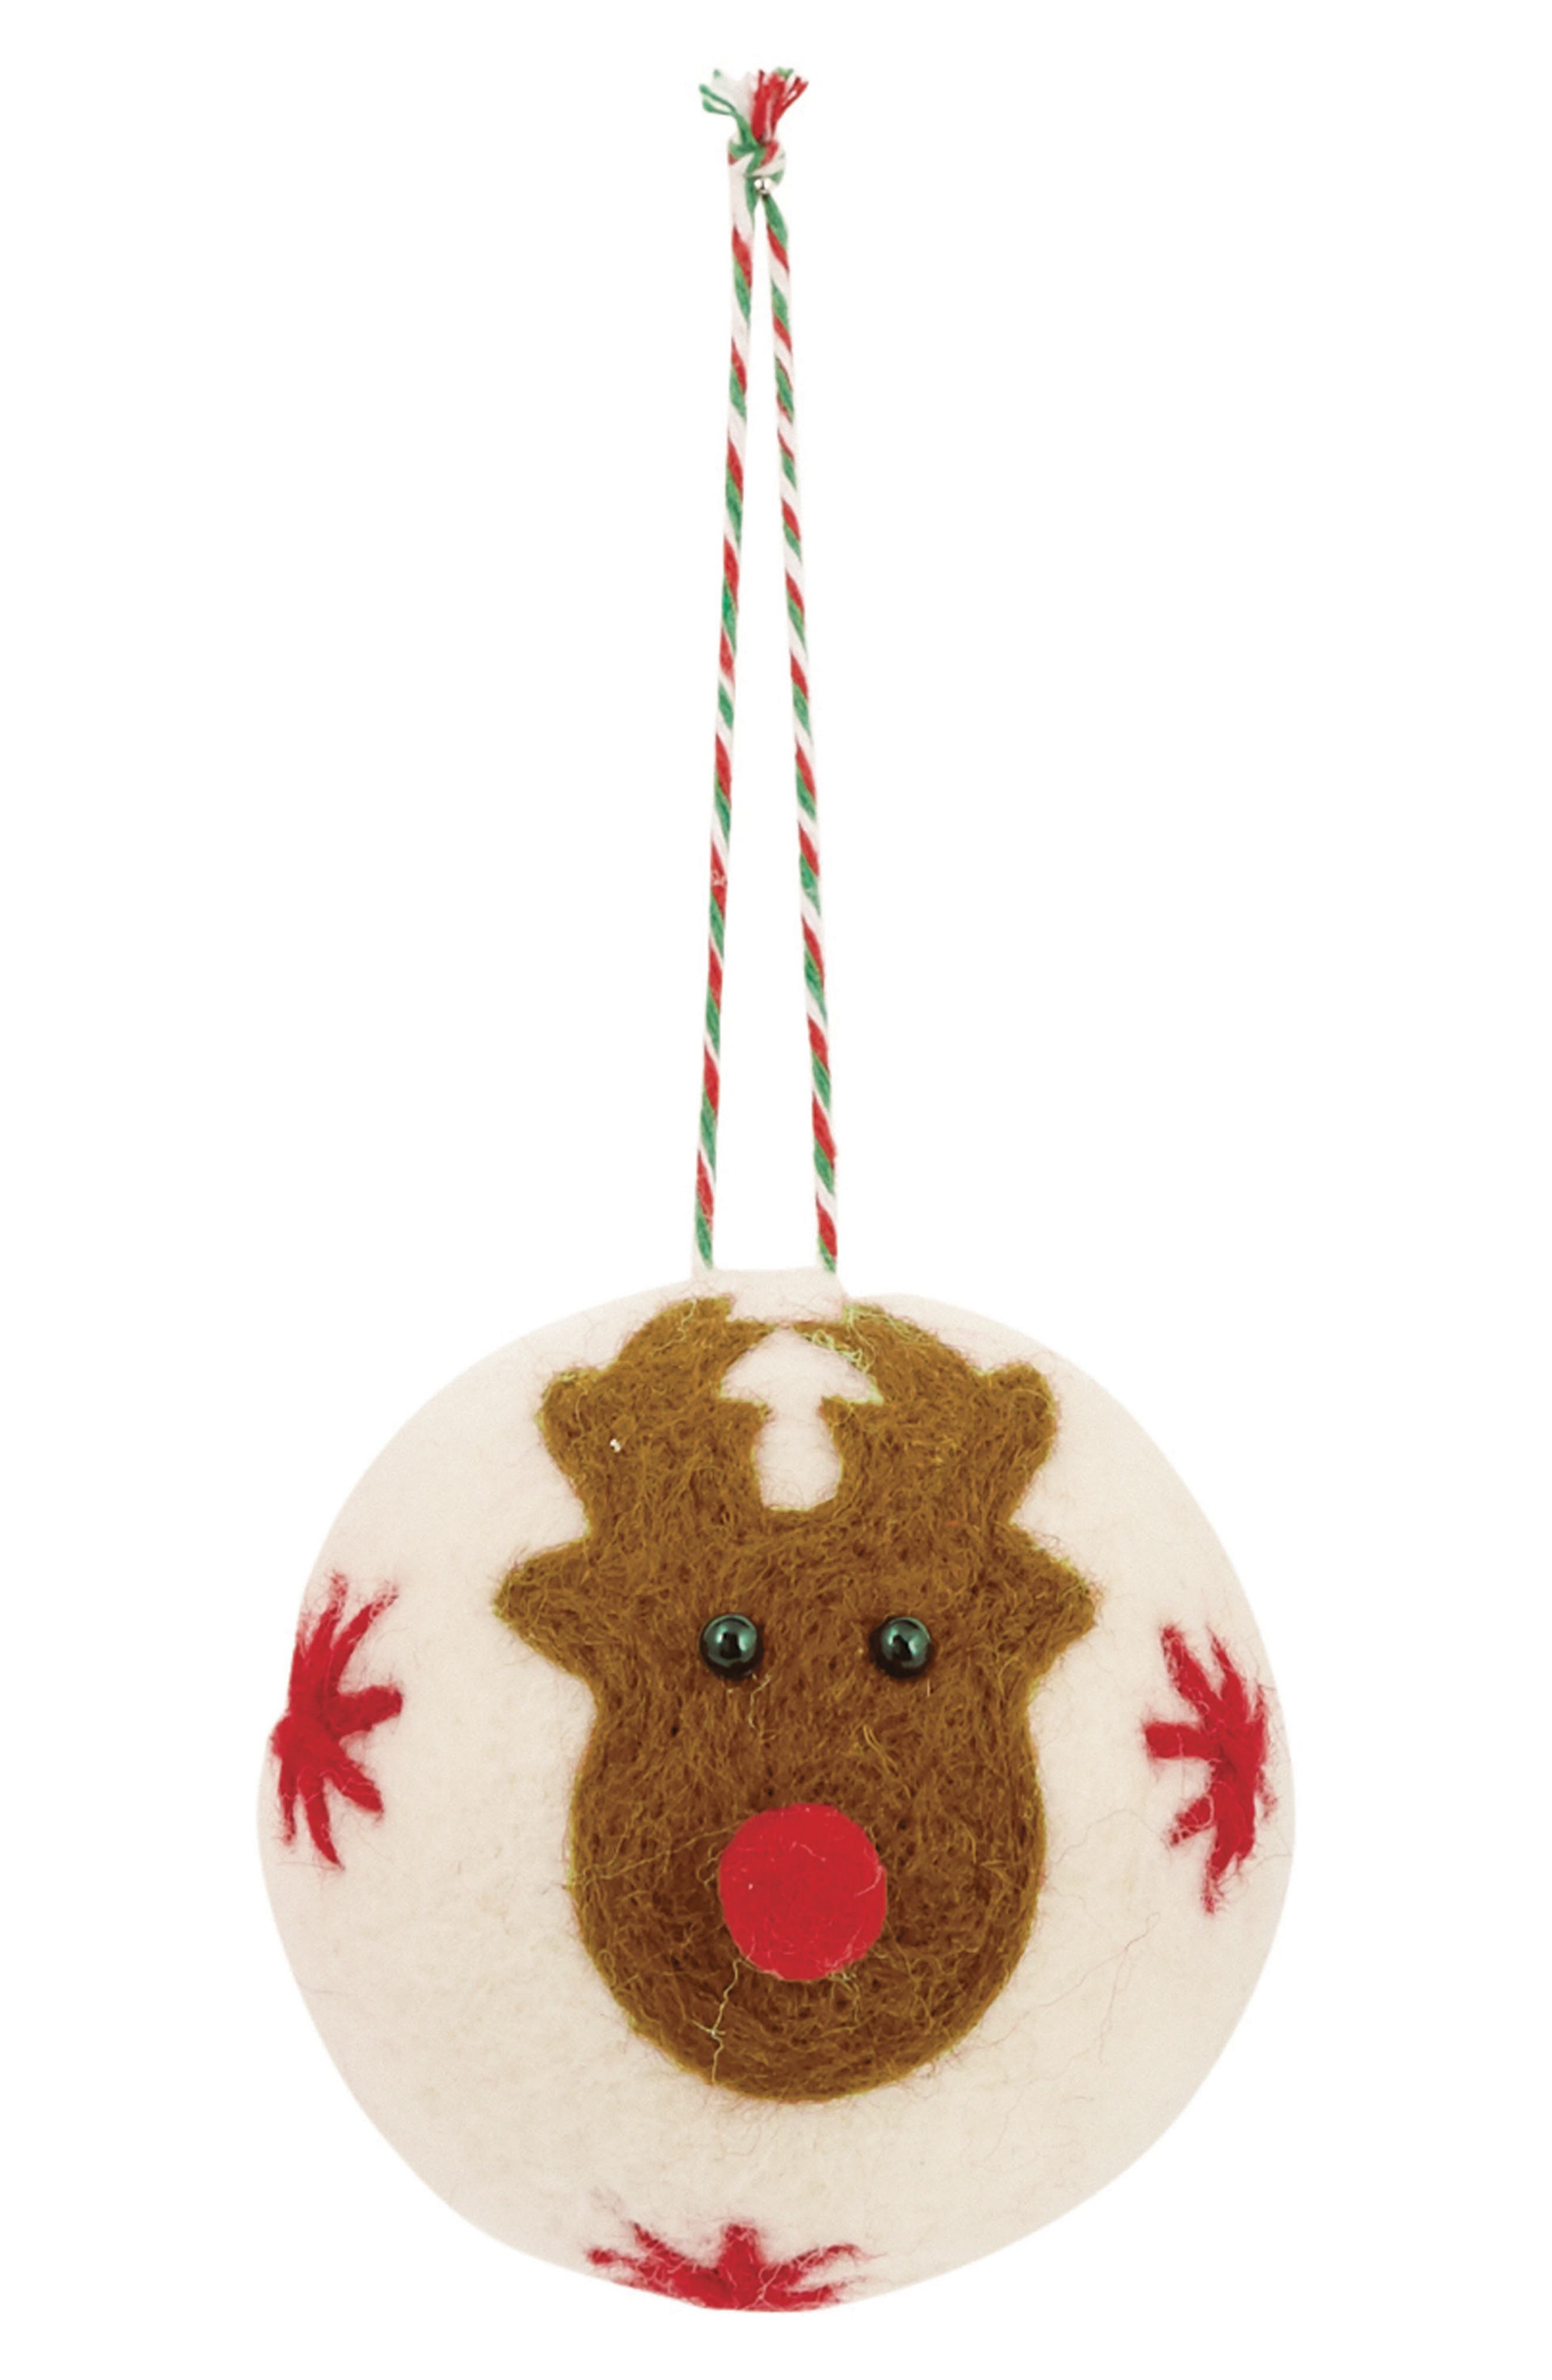 Boiled Wool Reindeer Ornament,                             Main thumbnail 1, color,                             White